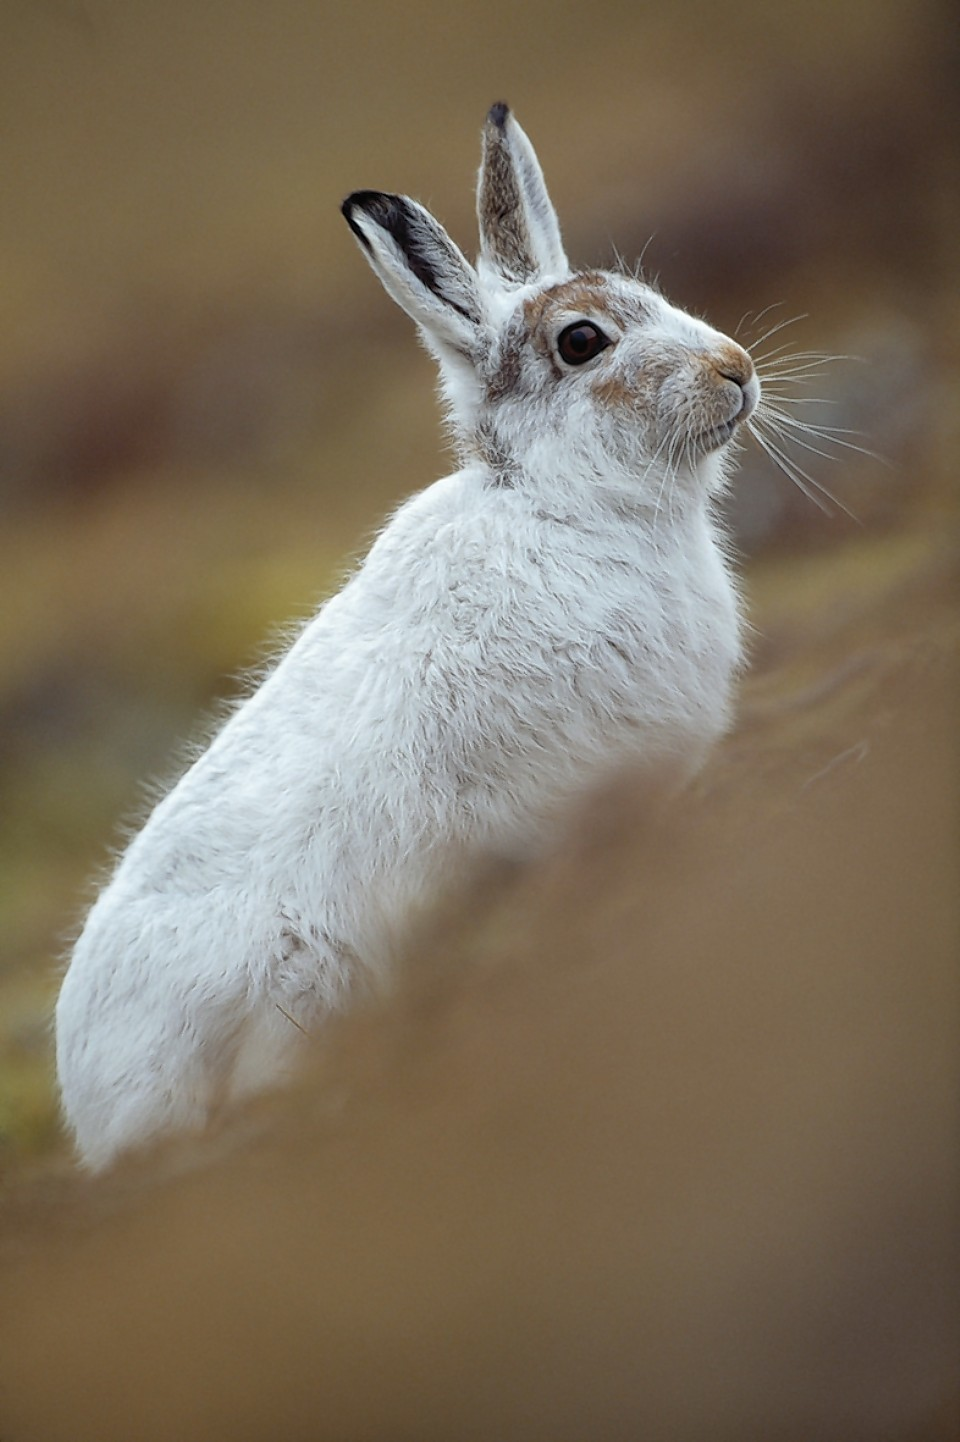 Estates are urged not to carry out large-scale culls of mountain hares.